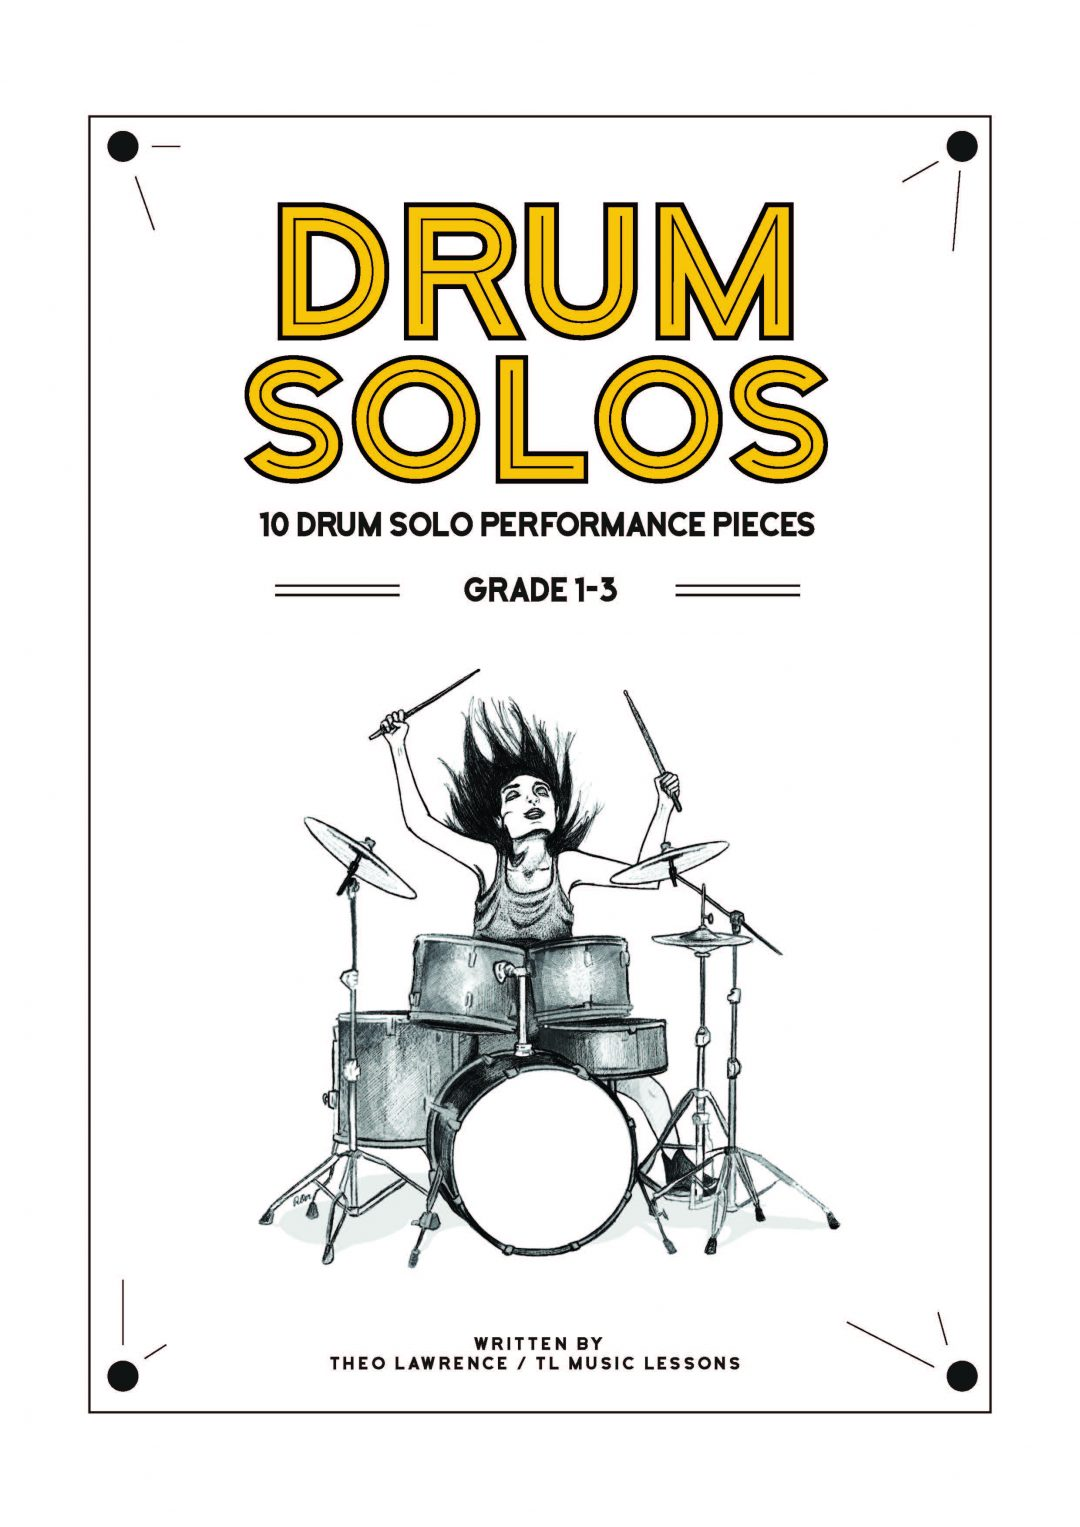 (Premium) – Drum Book PDF – 10 drum solo performance pieces grade 1-3